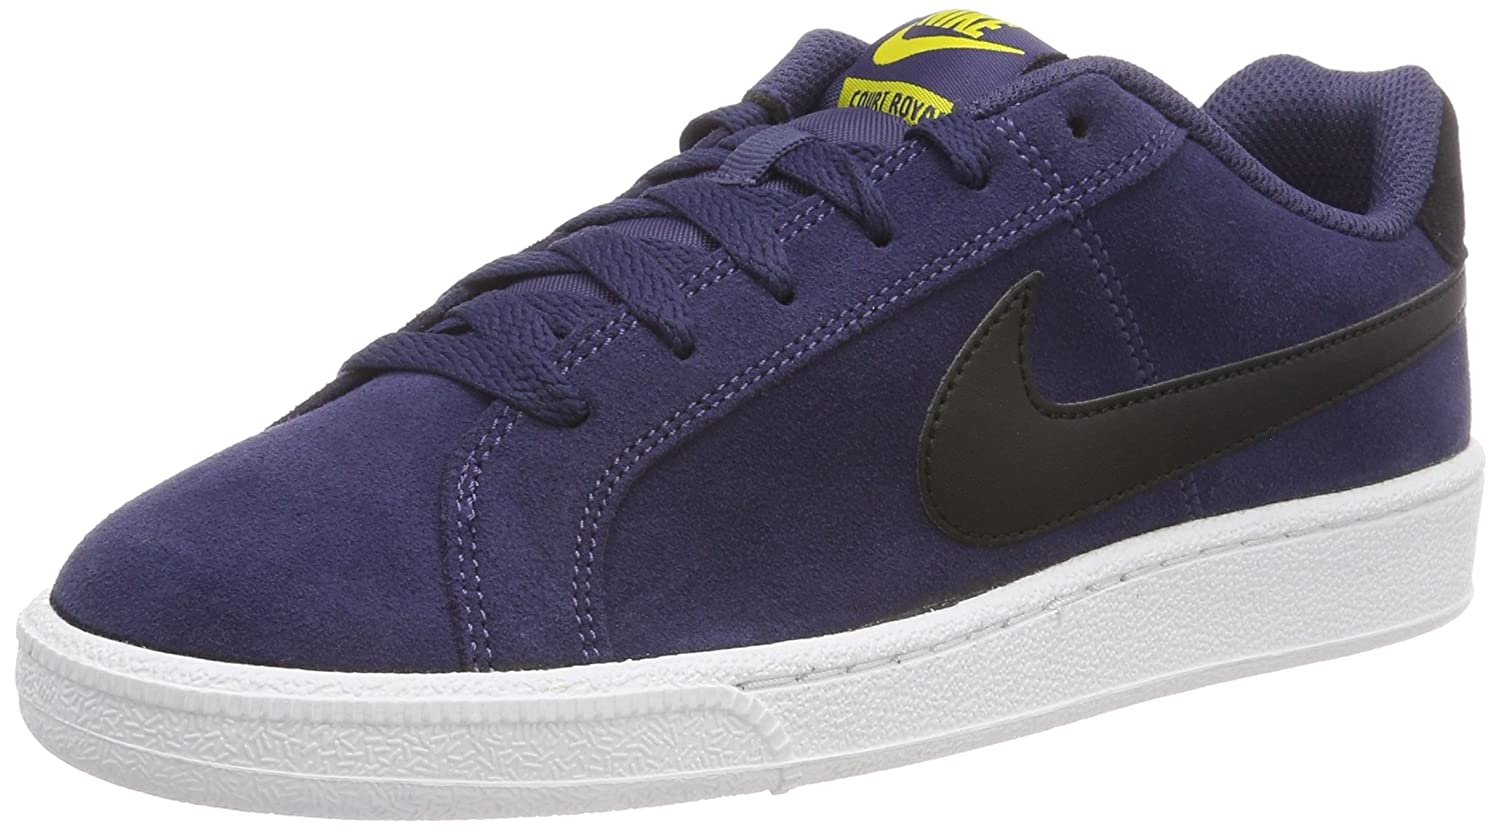 Nike Herren Court Royale Suede Gymnastikschuhe  44.5 EU|Blau (Neutral Indigo/Nero/Tour Yellow 500)